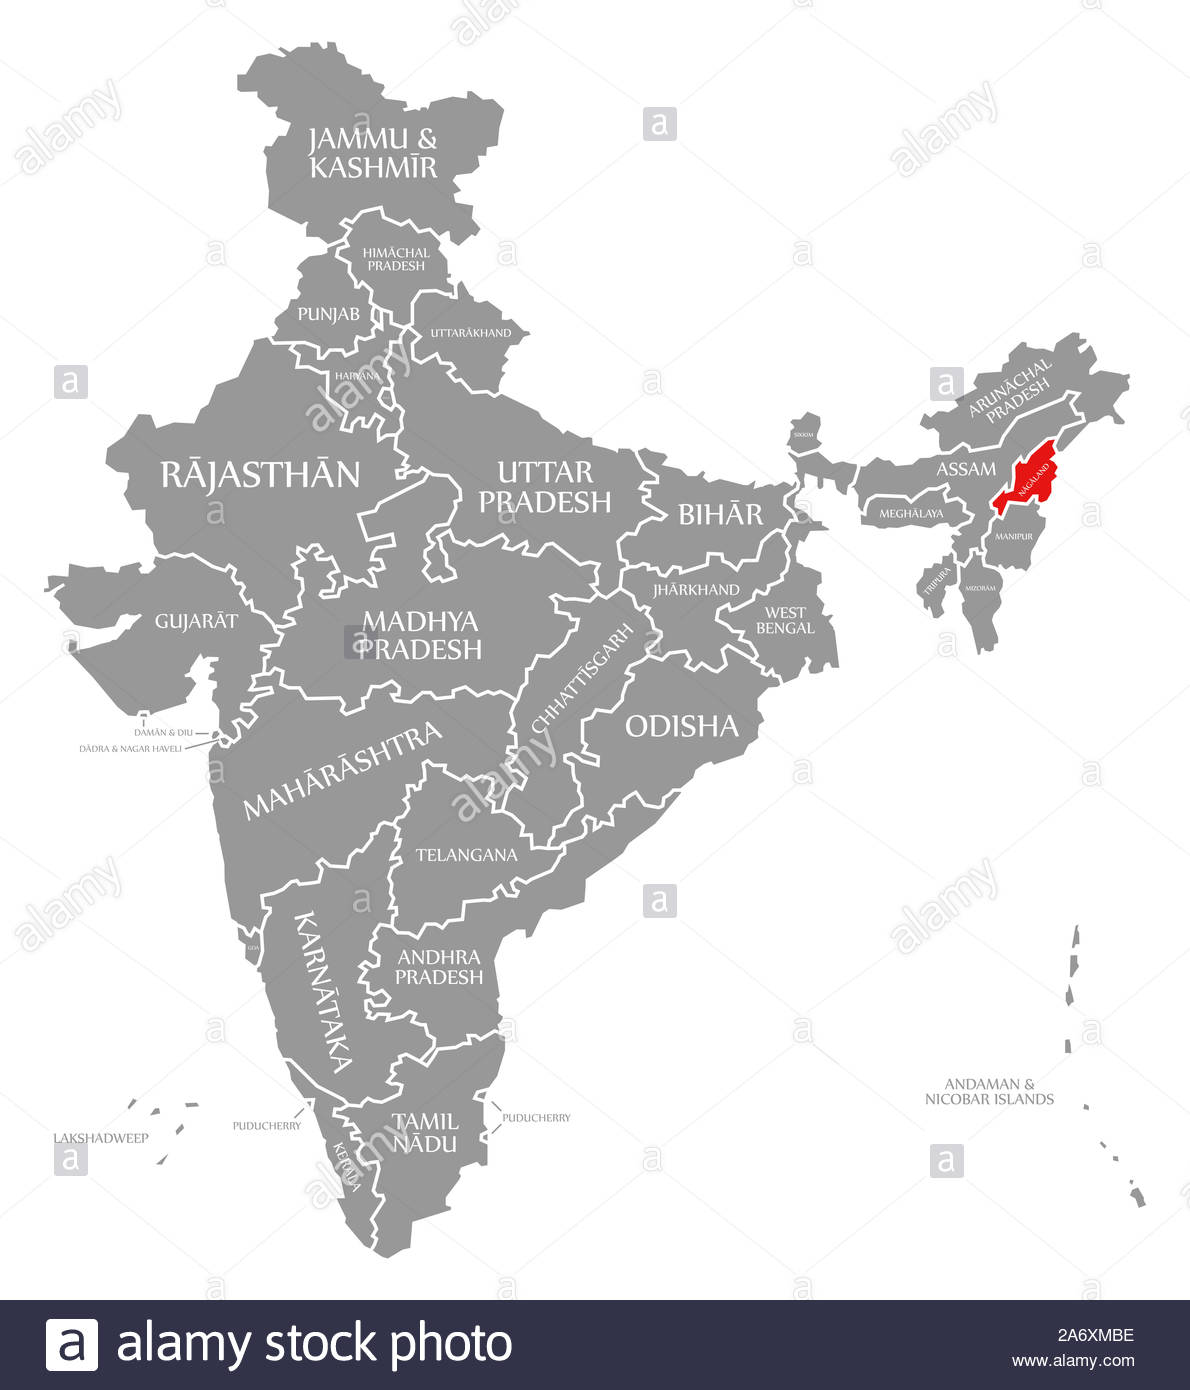 Nagaland Map From Alamy 7